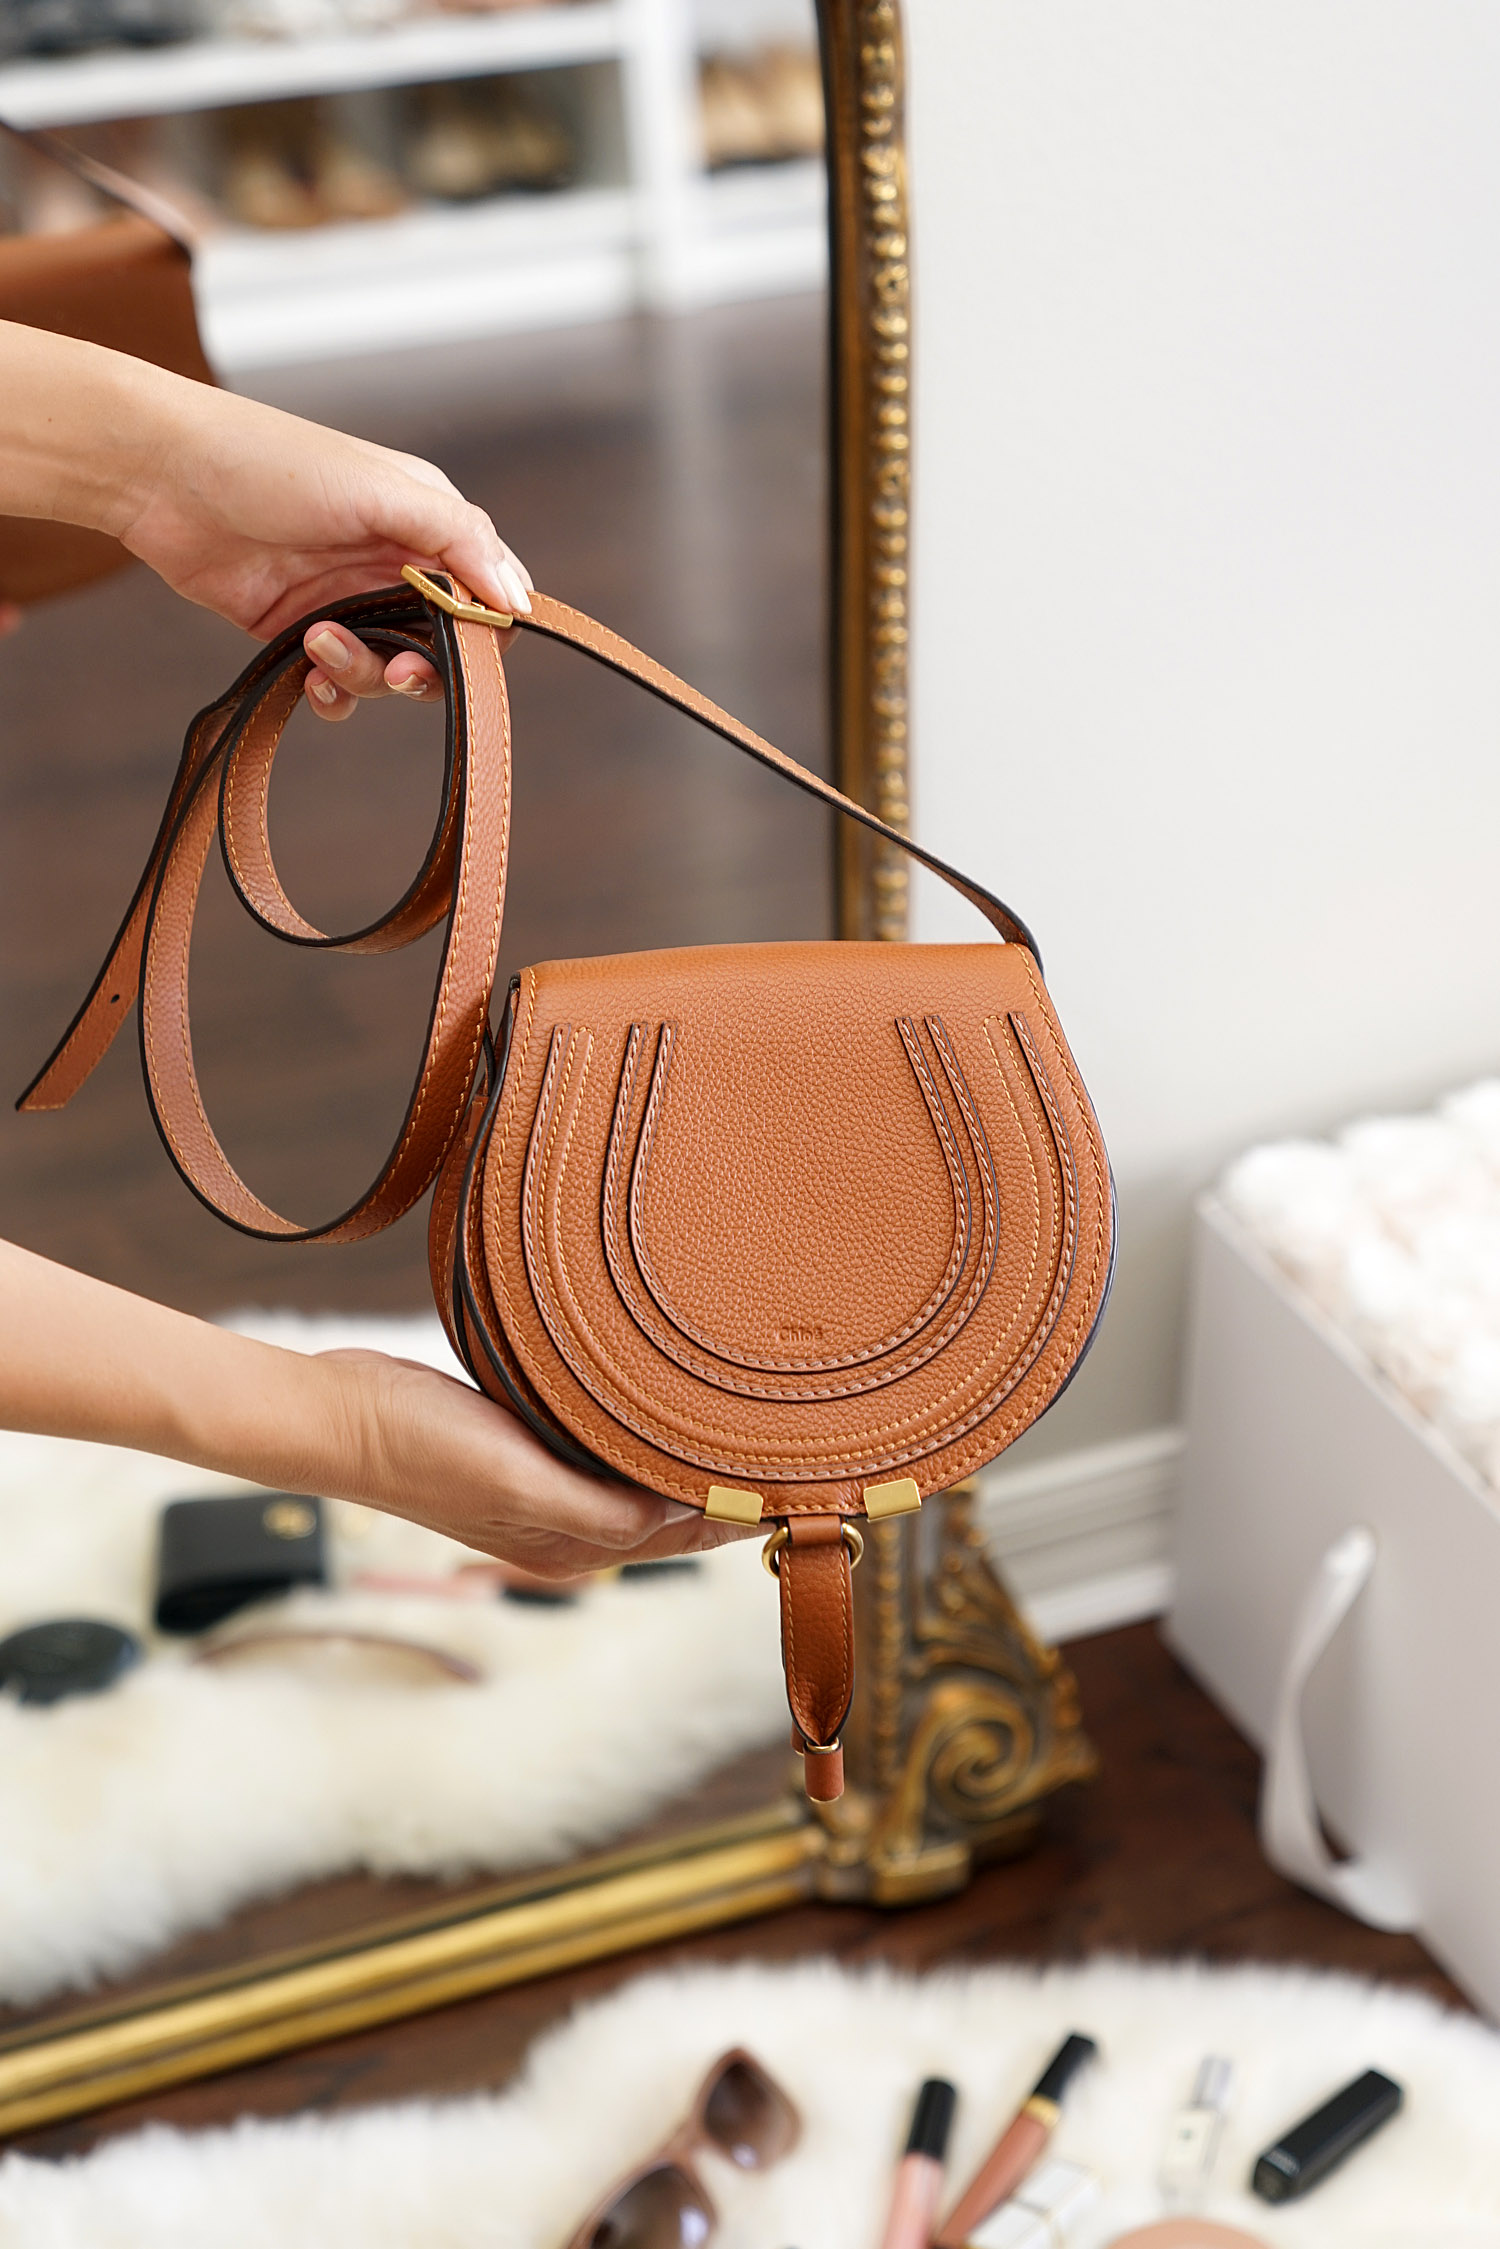 b5100cad62 Chloe Mini Marcie Bag Review Tan | The Beauty Look Book